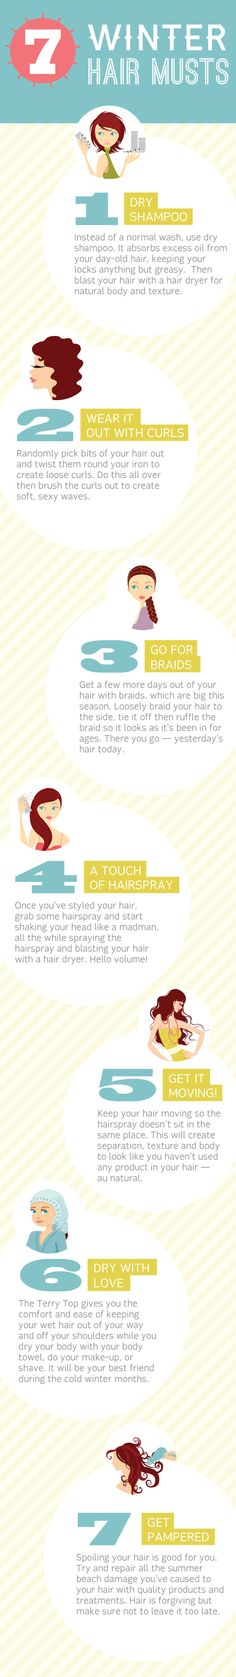 7 Winter Hair Musts